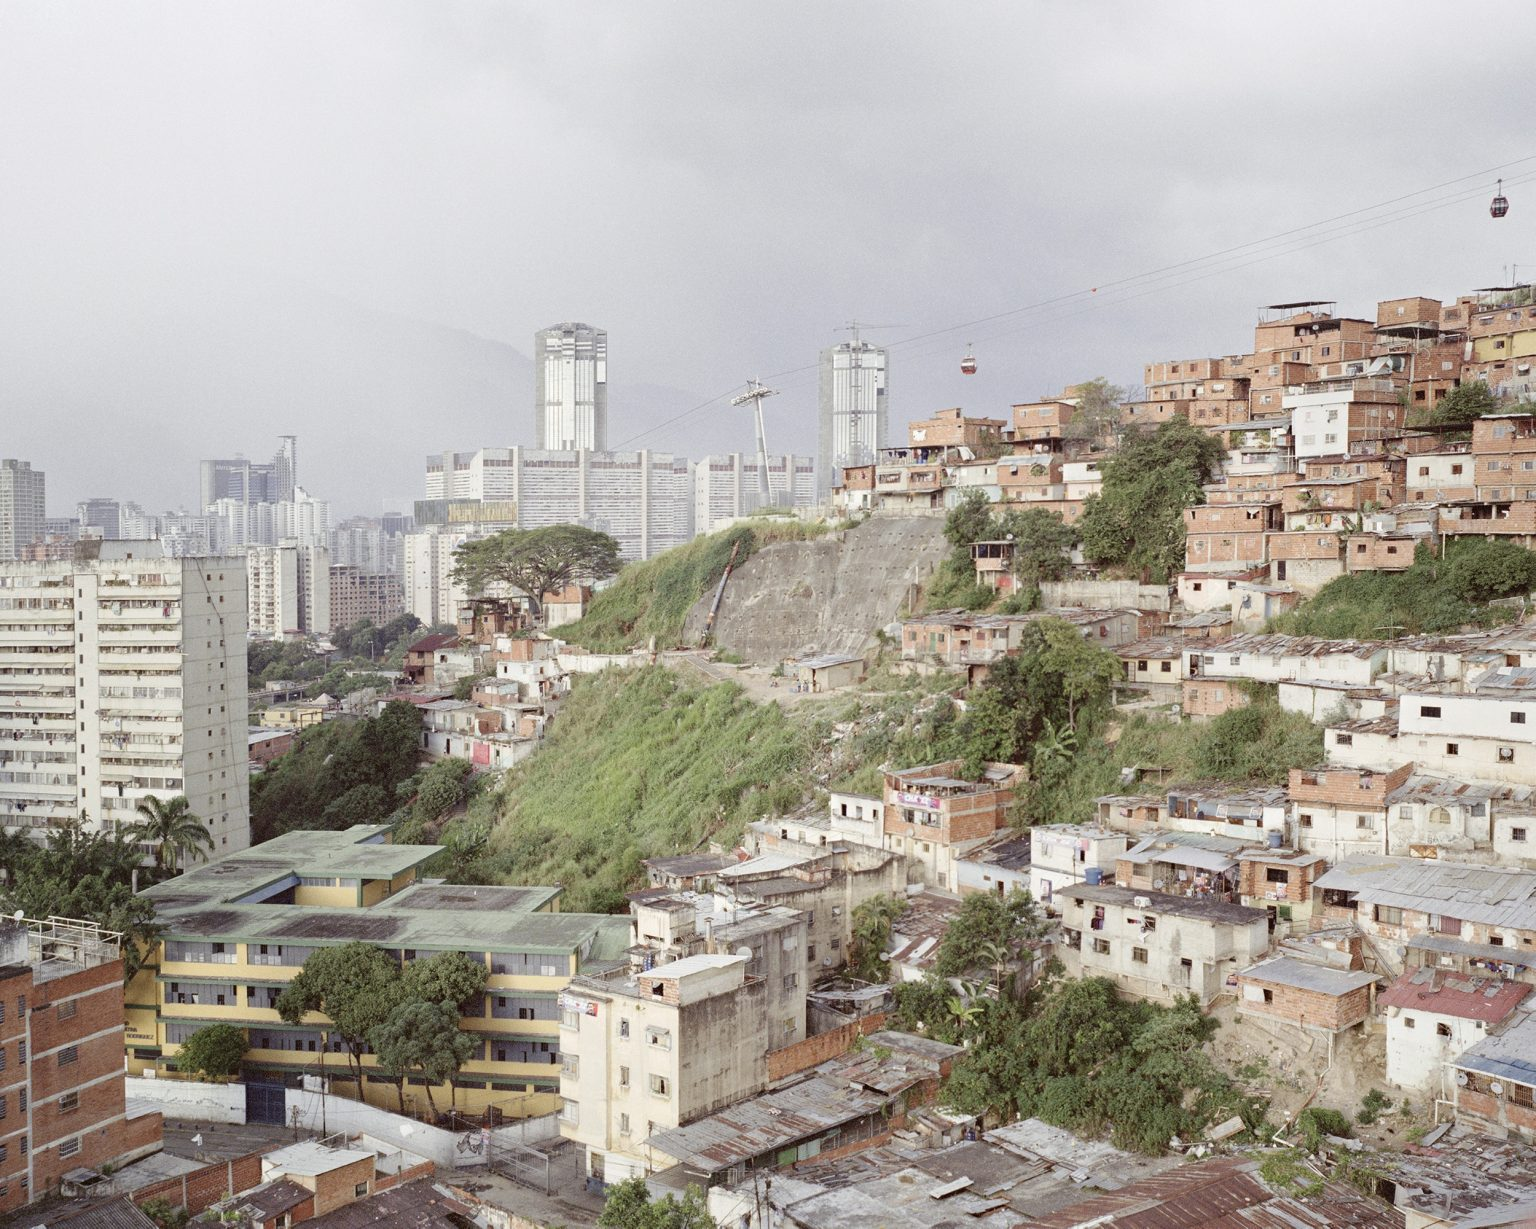 the-two-halves-daily-life-in-venezuela-after-chavezs-death-on-the-right-the-cableway-build-by-chavez-on-the-slum-san-agustin